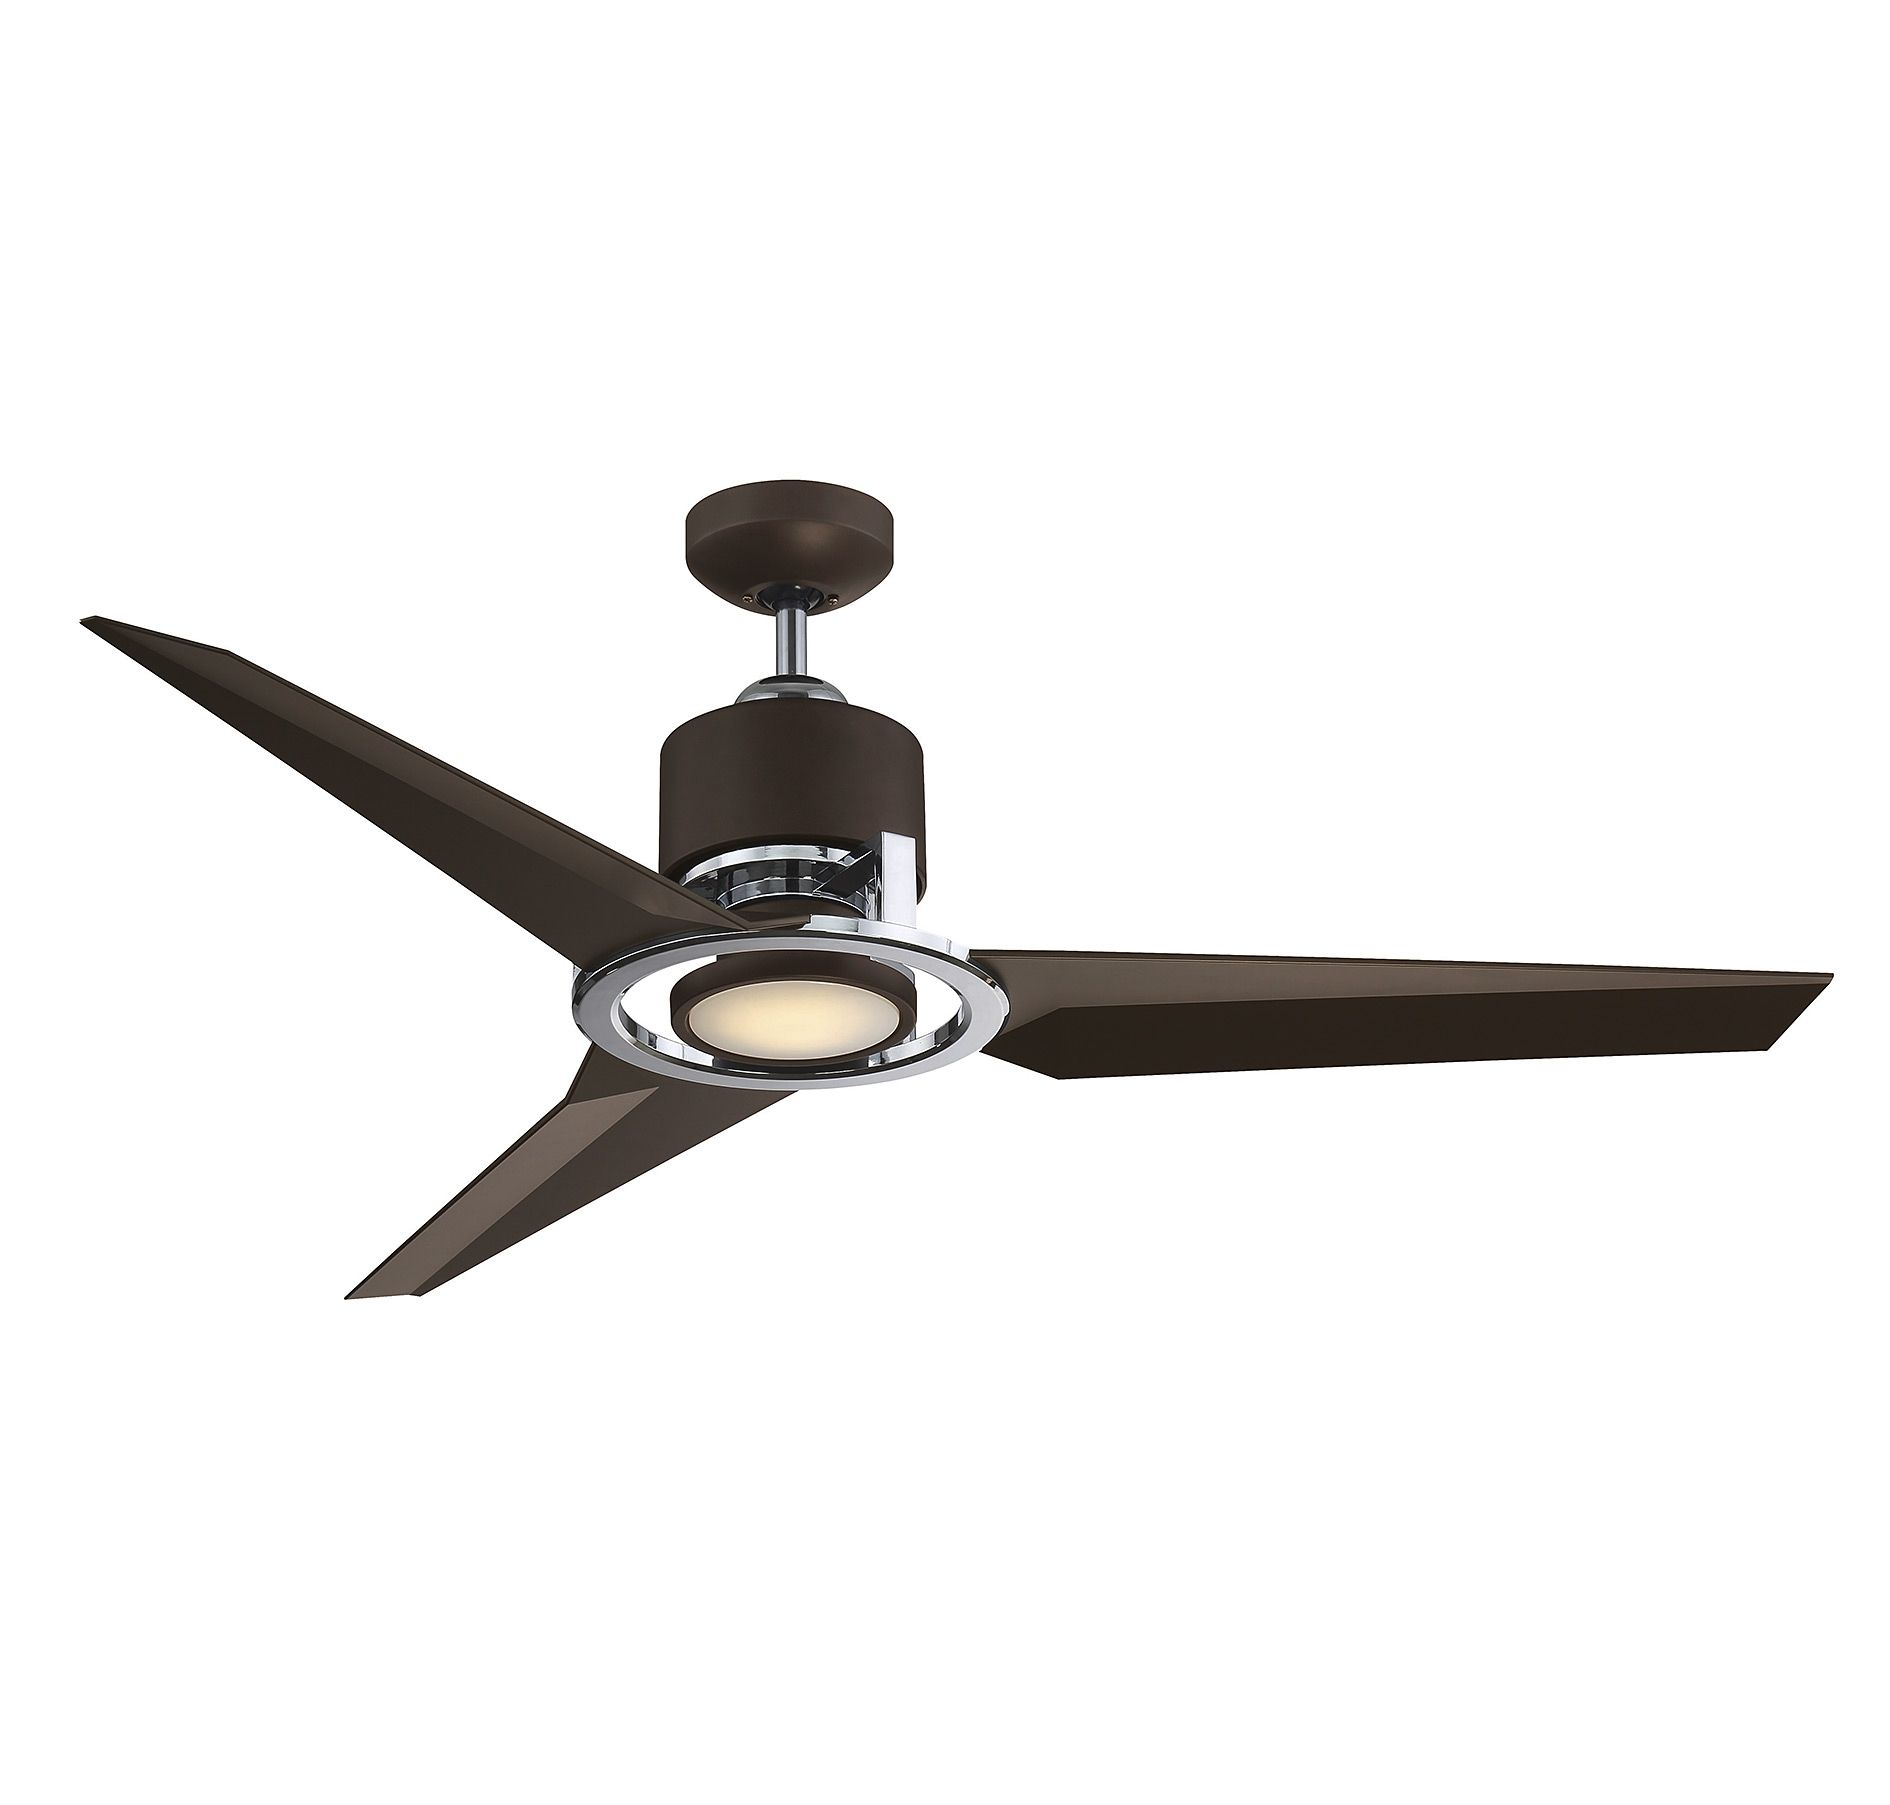 Ceiling Fan And Light Remote Control Conversion Kit